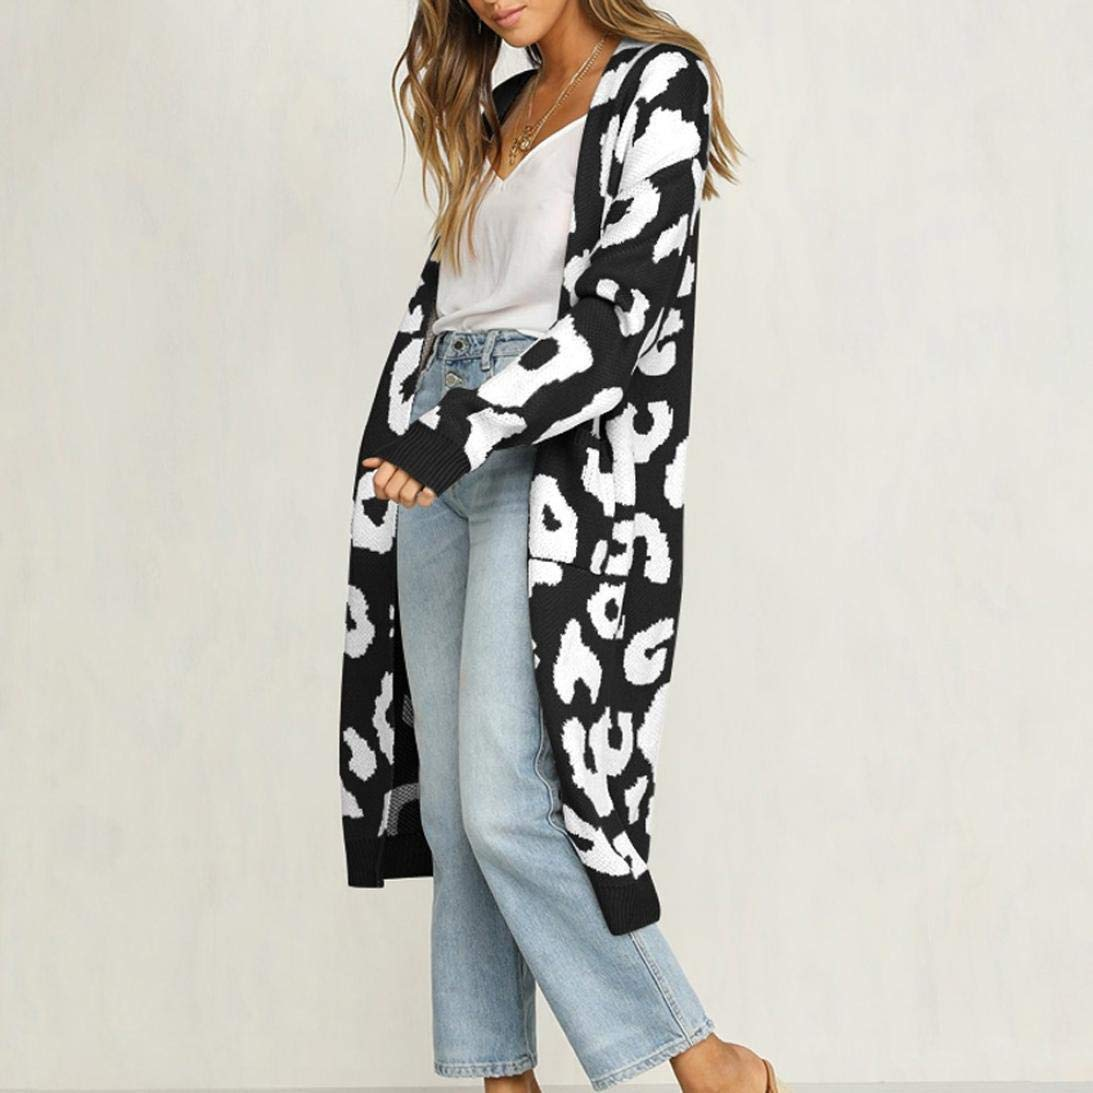 Long Sleeve Leopard Knitted Cardigan Sweater Coat from Amazon